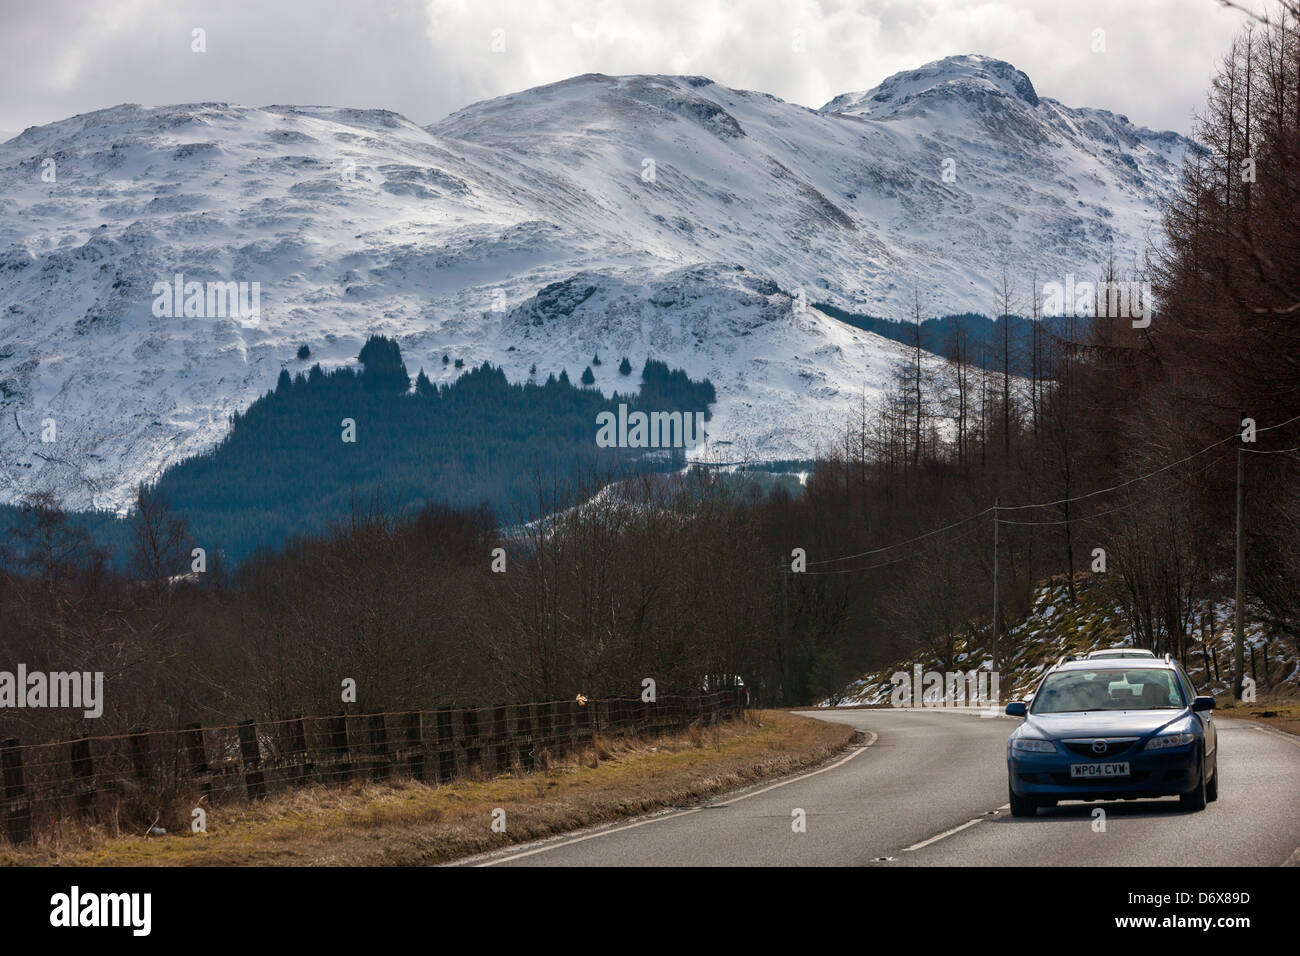 A view towards Ben More, Tyndrum, Stirling, Scotland, UK, Europe. - Stock Image